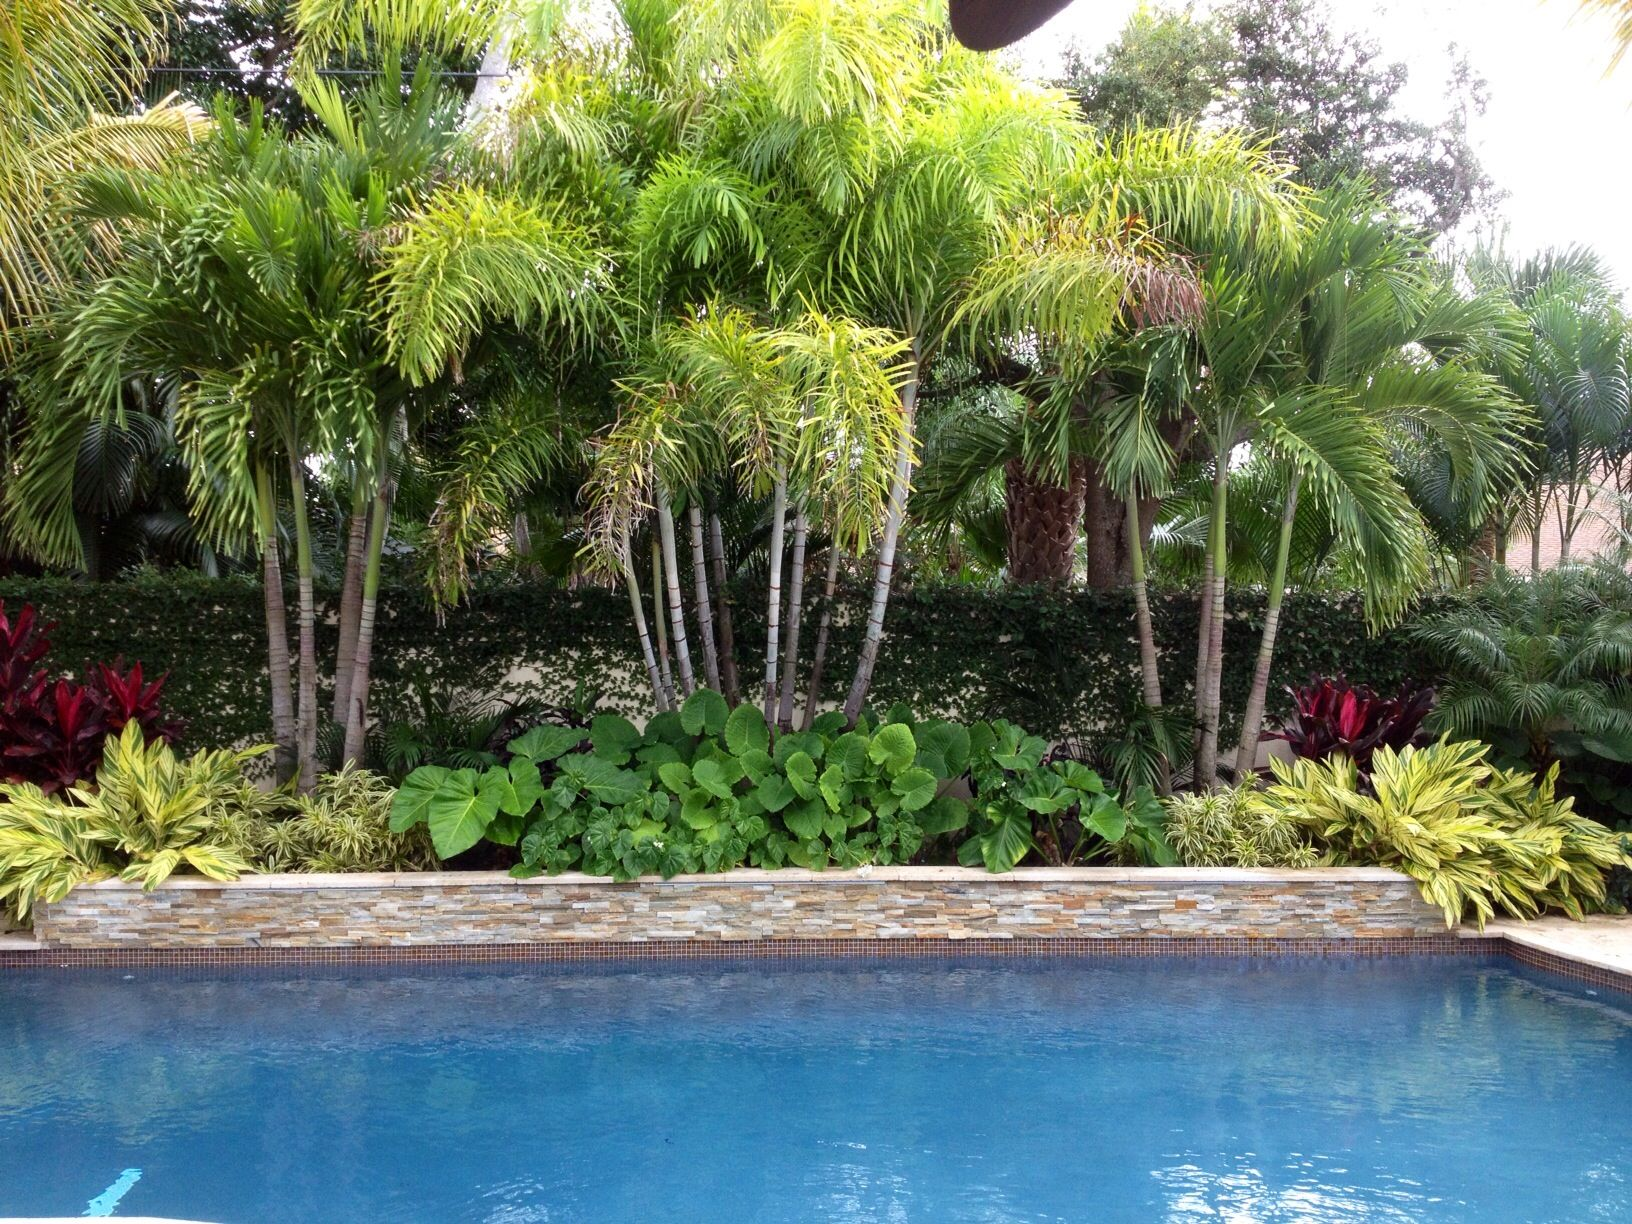 Pin By Palmtree On Landscape With Palm Trees Pinterest